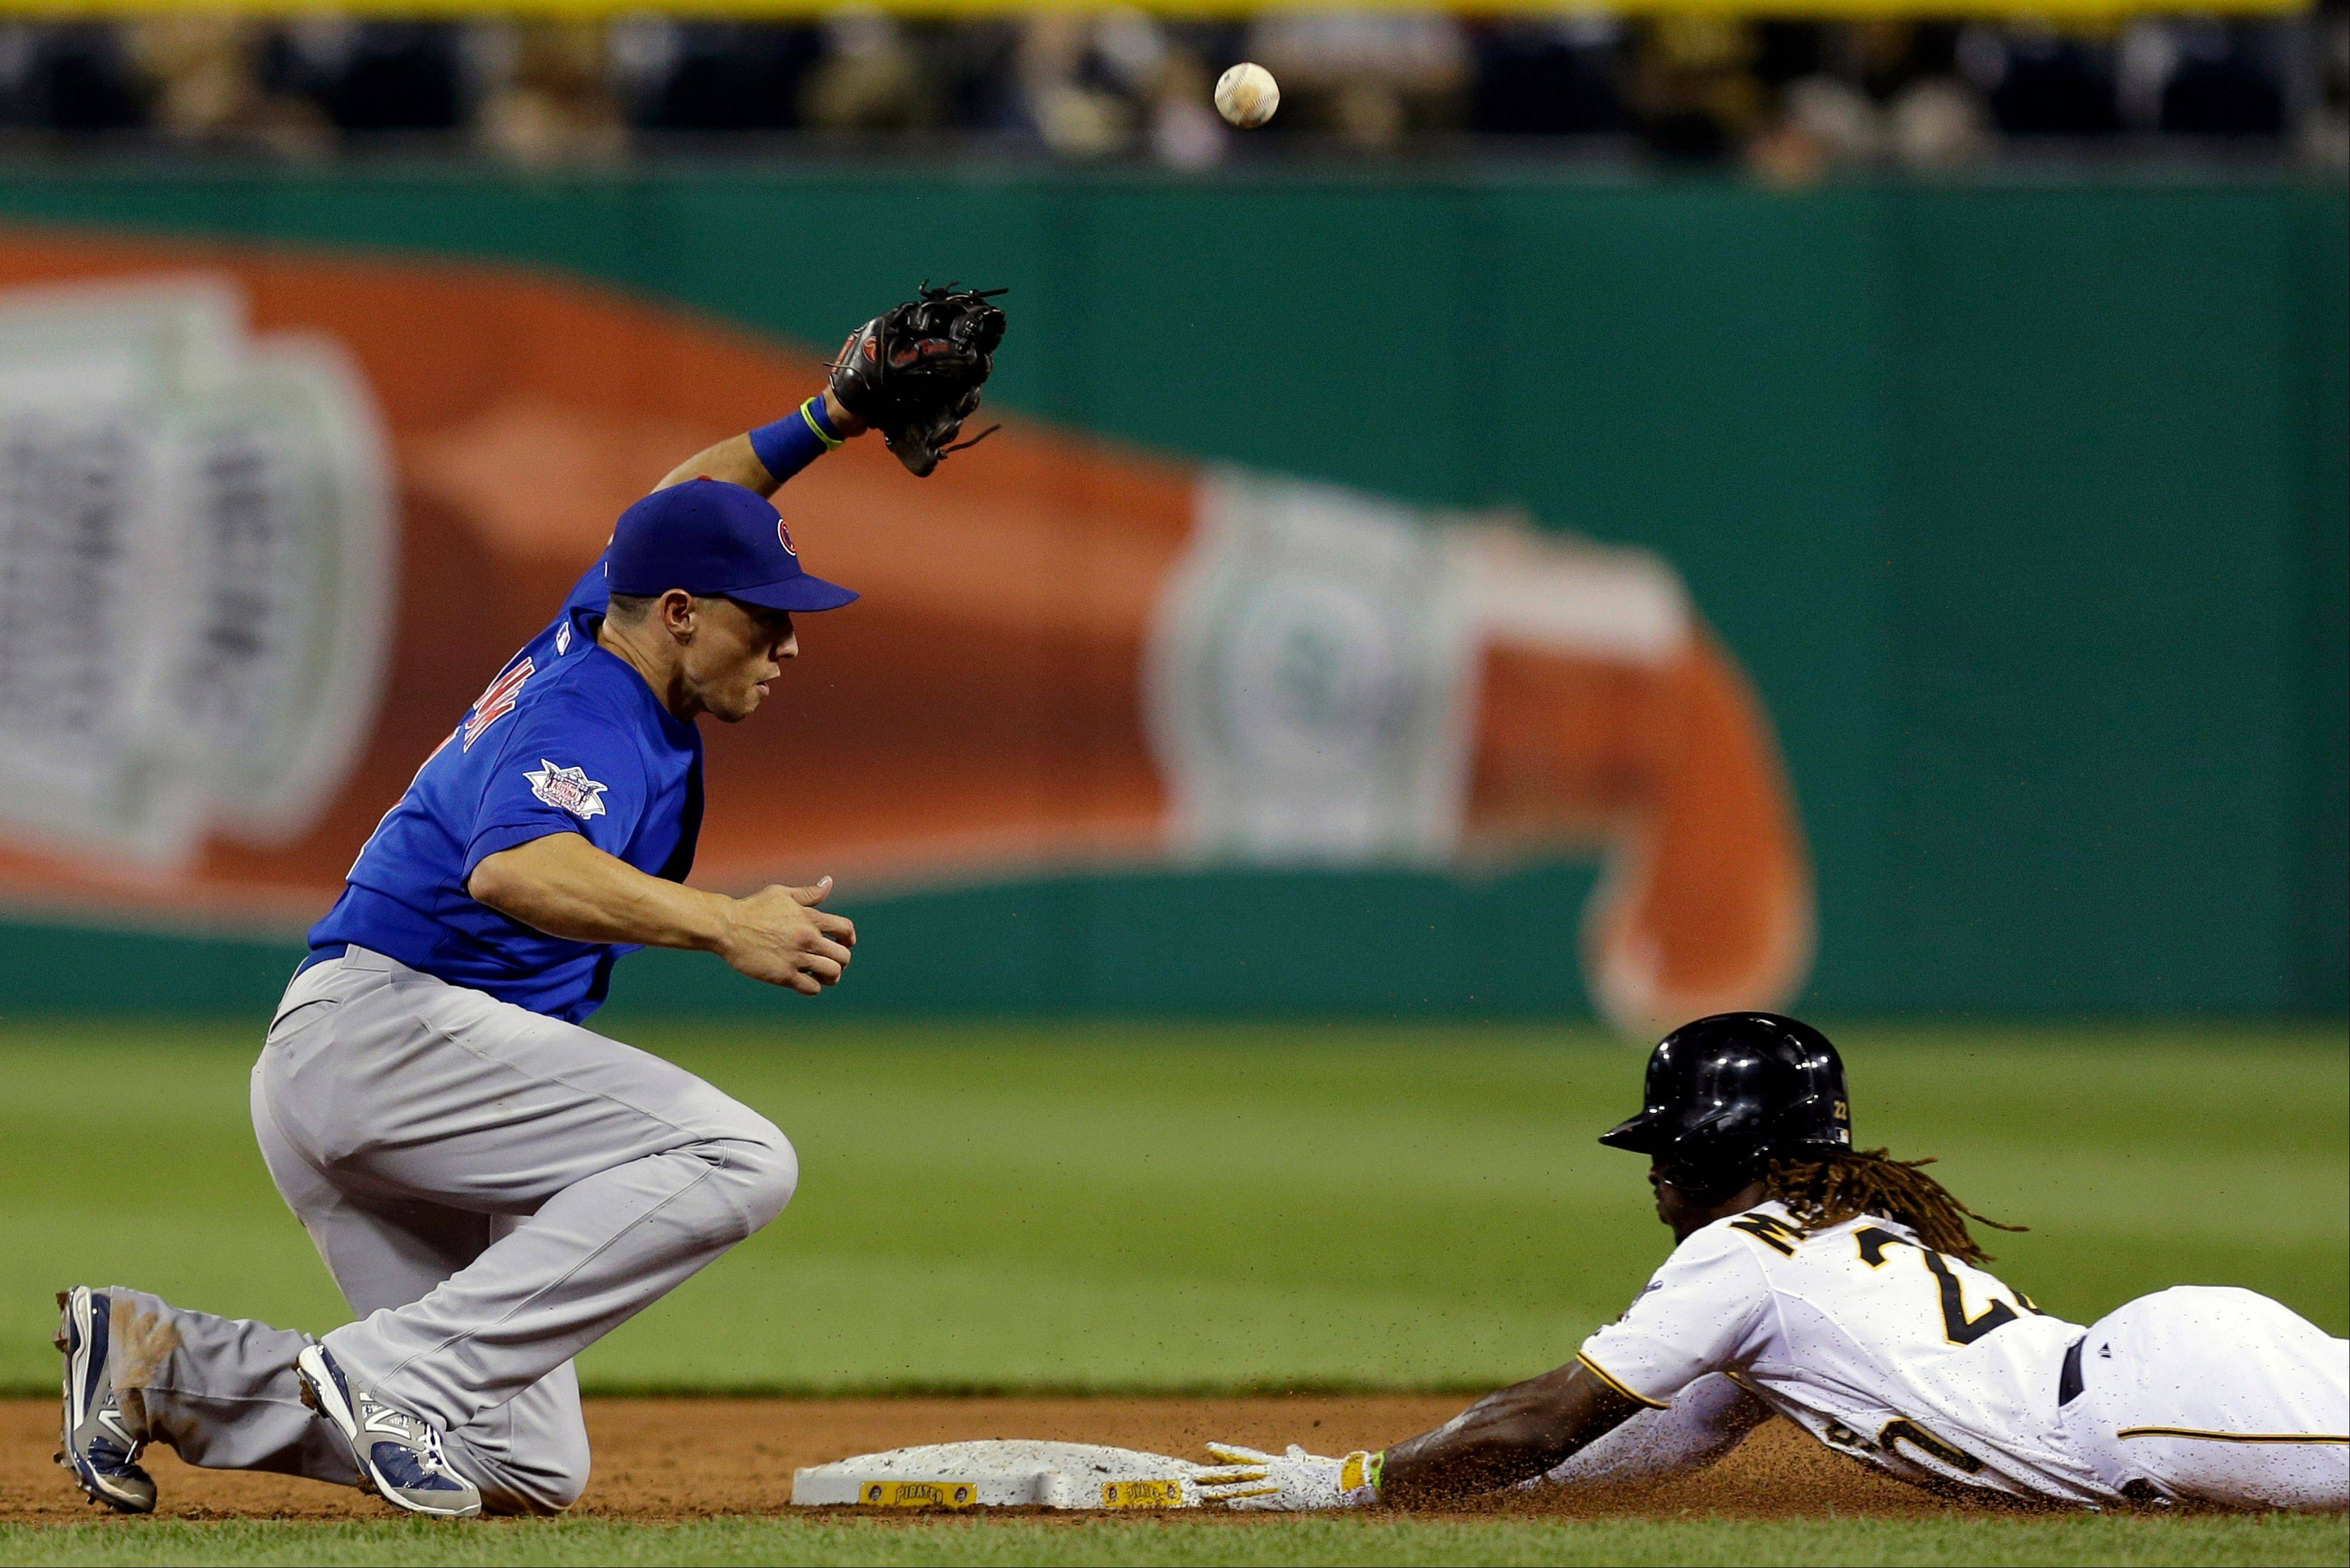 Pittsburgh Pirates' Andrew McCutchen, right, steals second as the throw from Chicago Cubs catcher Welington Castillo gets away from Cubs' Cody Ransom, left, during the Wednesday's game in Pittsburgh. The Cubs lost 1-0.